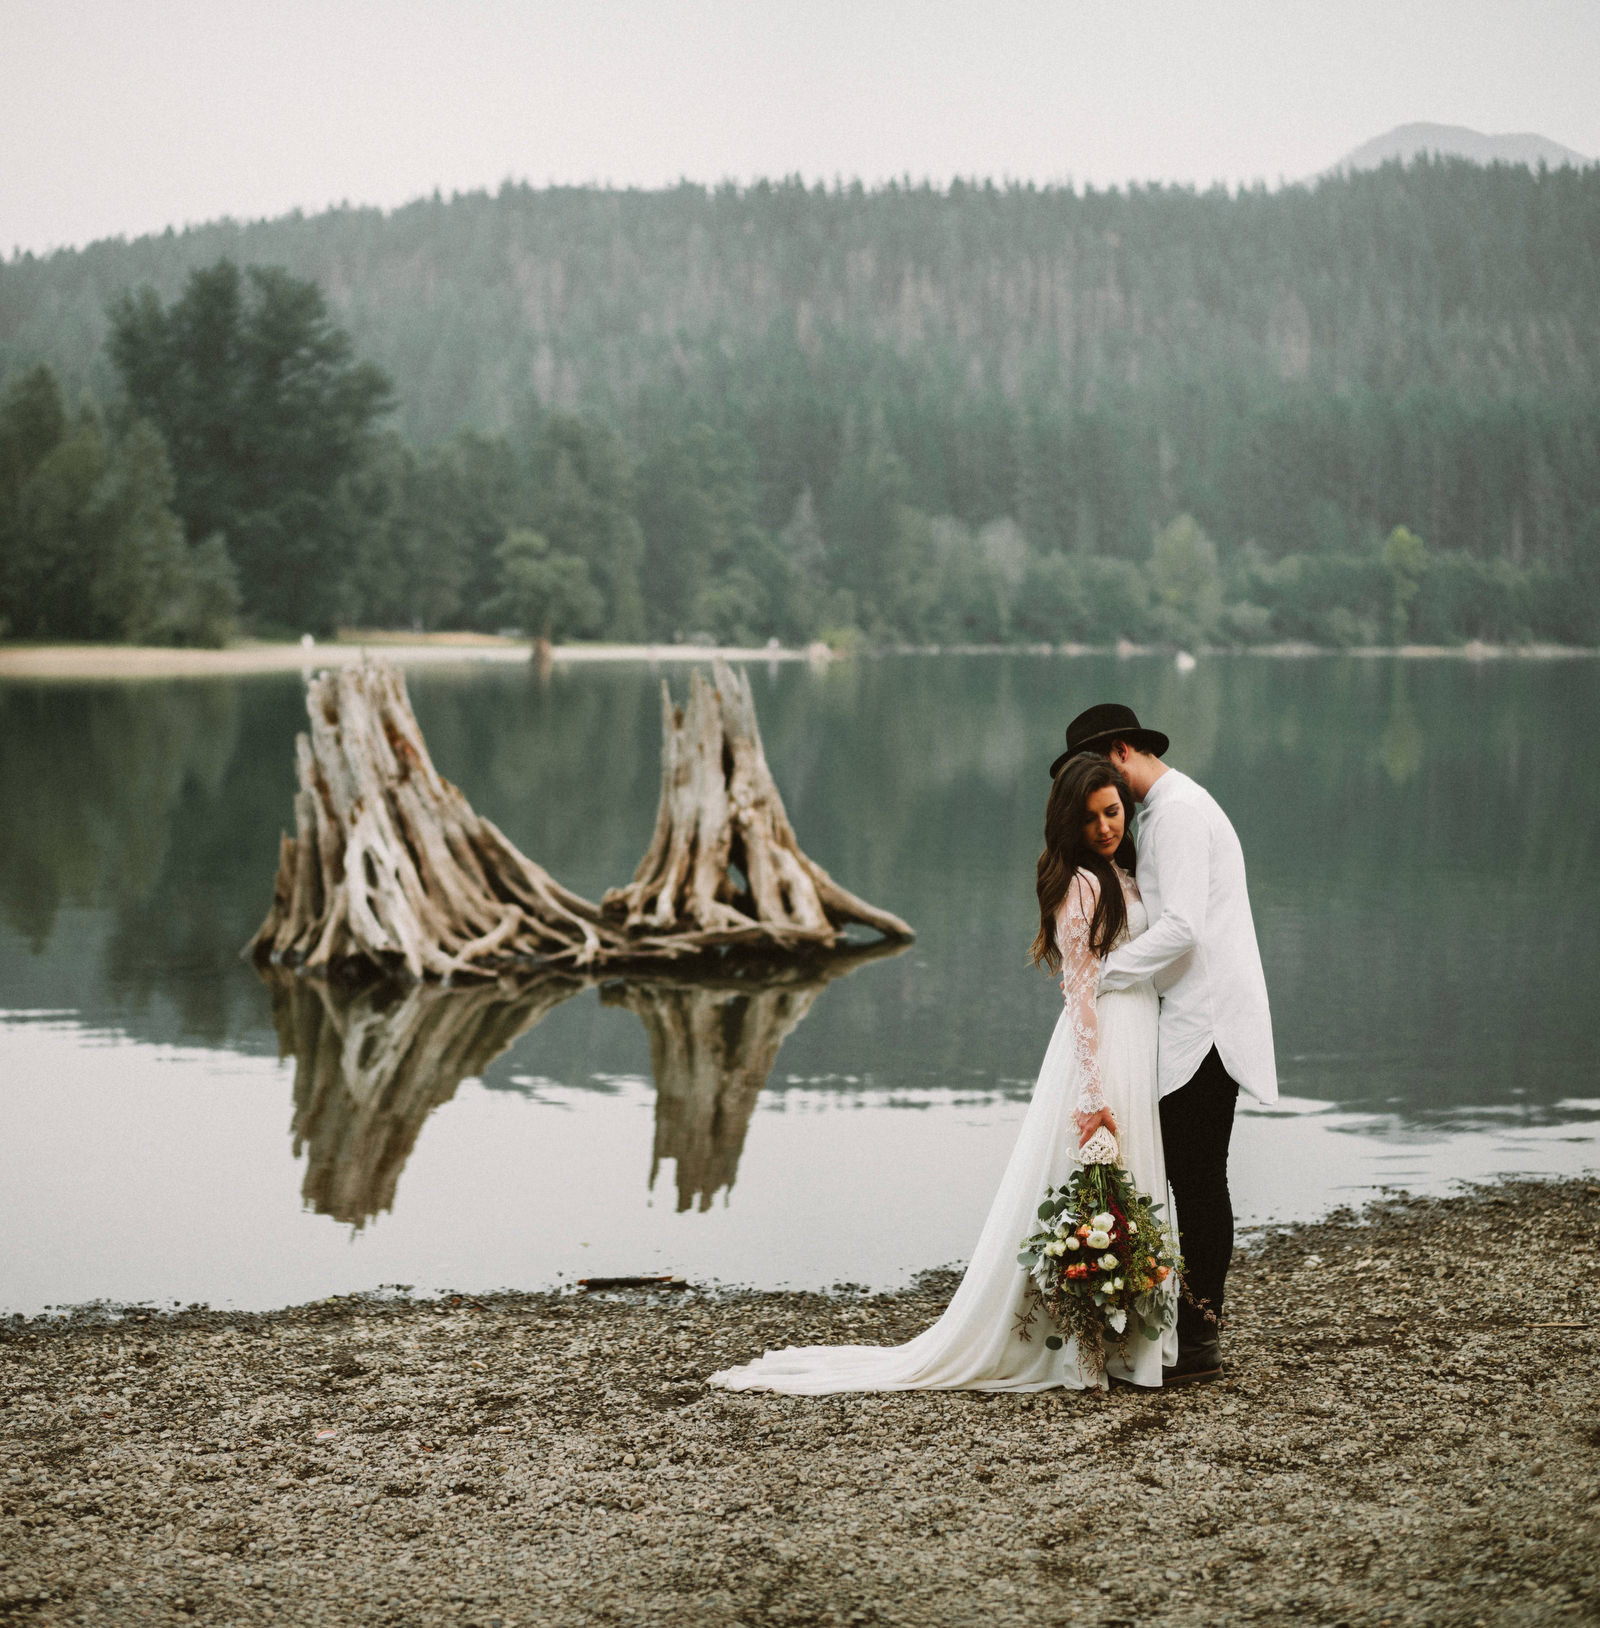 athena-and-camron-seattle-elopement-wedding-benj-haisch-rattlesnake-lake-christian-couple-goals80